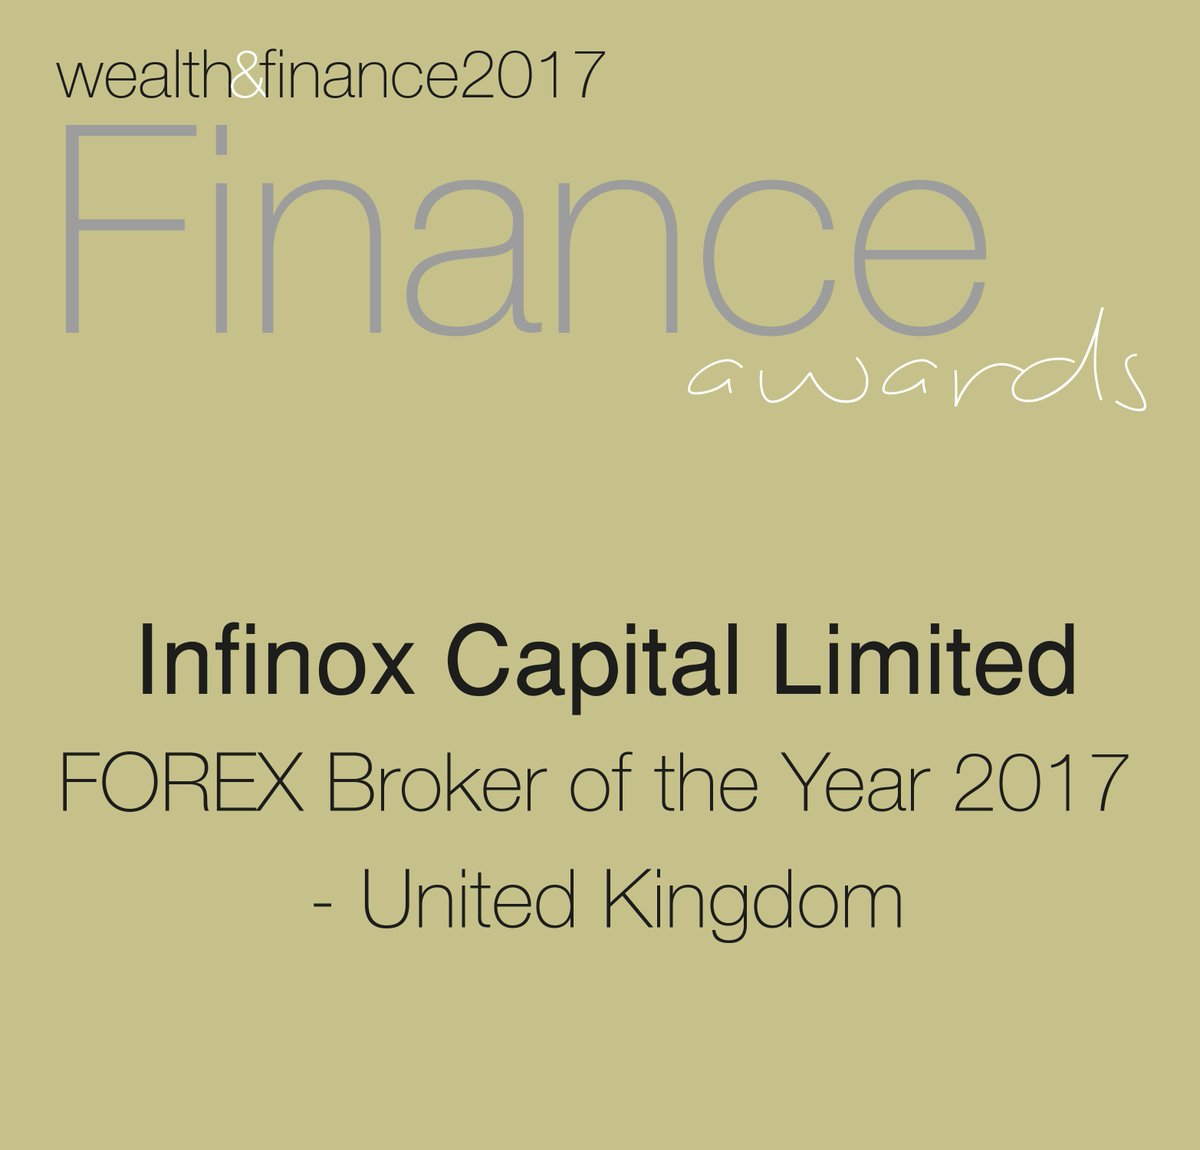 Infinox Uk On Twitter Thank You To Wandfmagazine For Choosing Capital As Your Forex Broker Of The Year 2017 United Kingdom